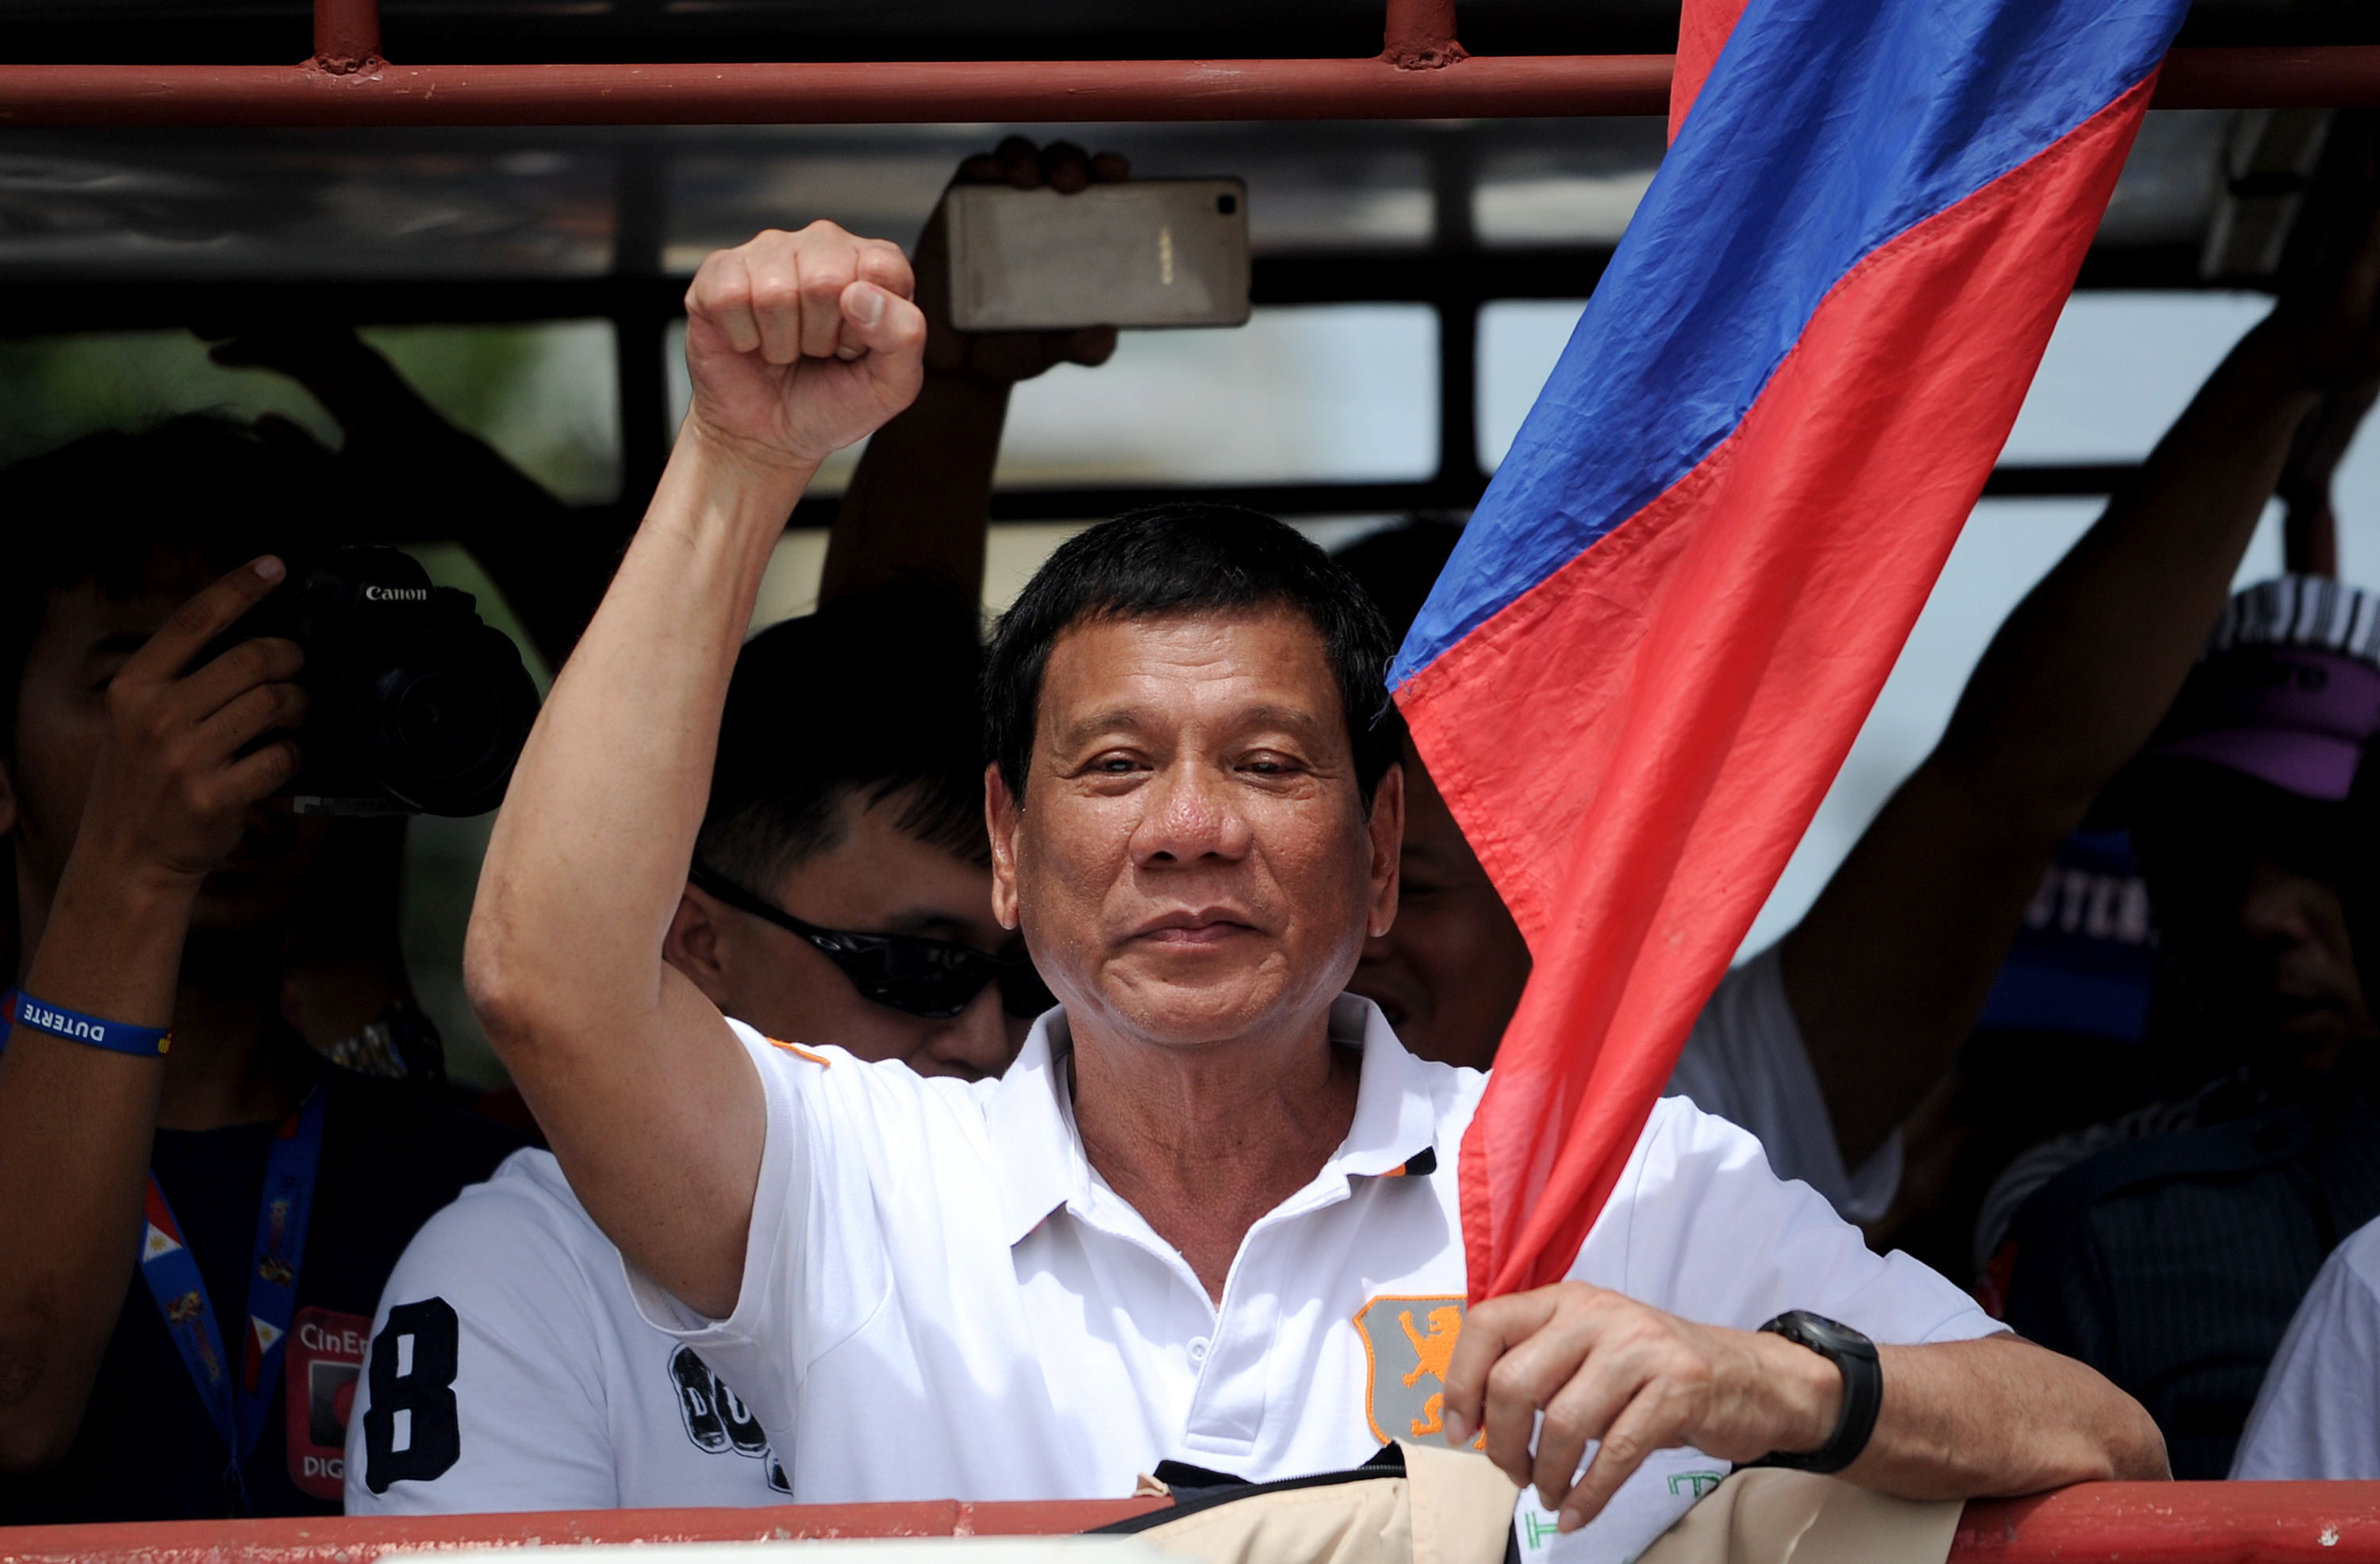 Presidential candidate and Davao City Mayor Rodrigo Duterte raises a clenched fist during his campaign sortie in Lingayen, in the Philippine province of Pangasinan, on March 2, 2016